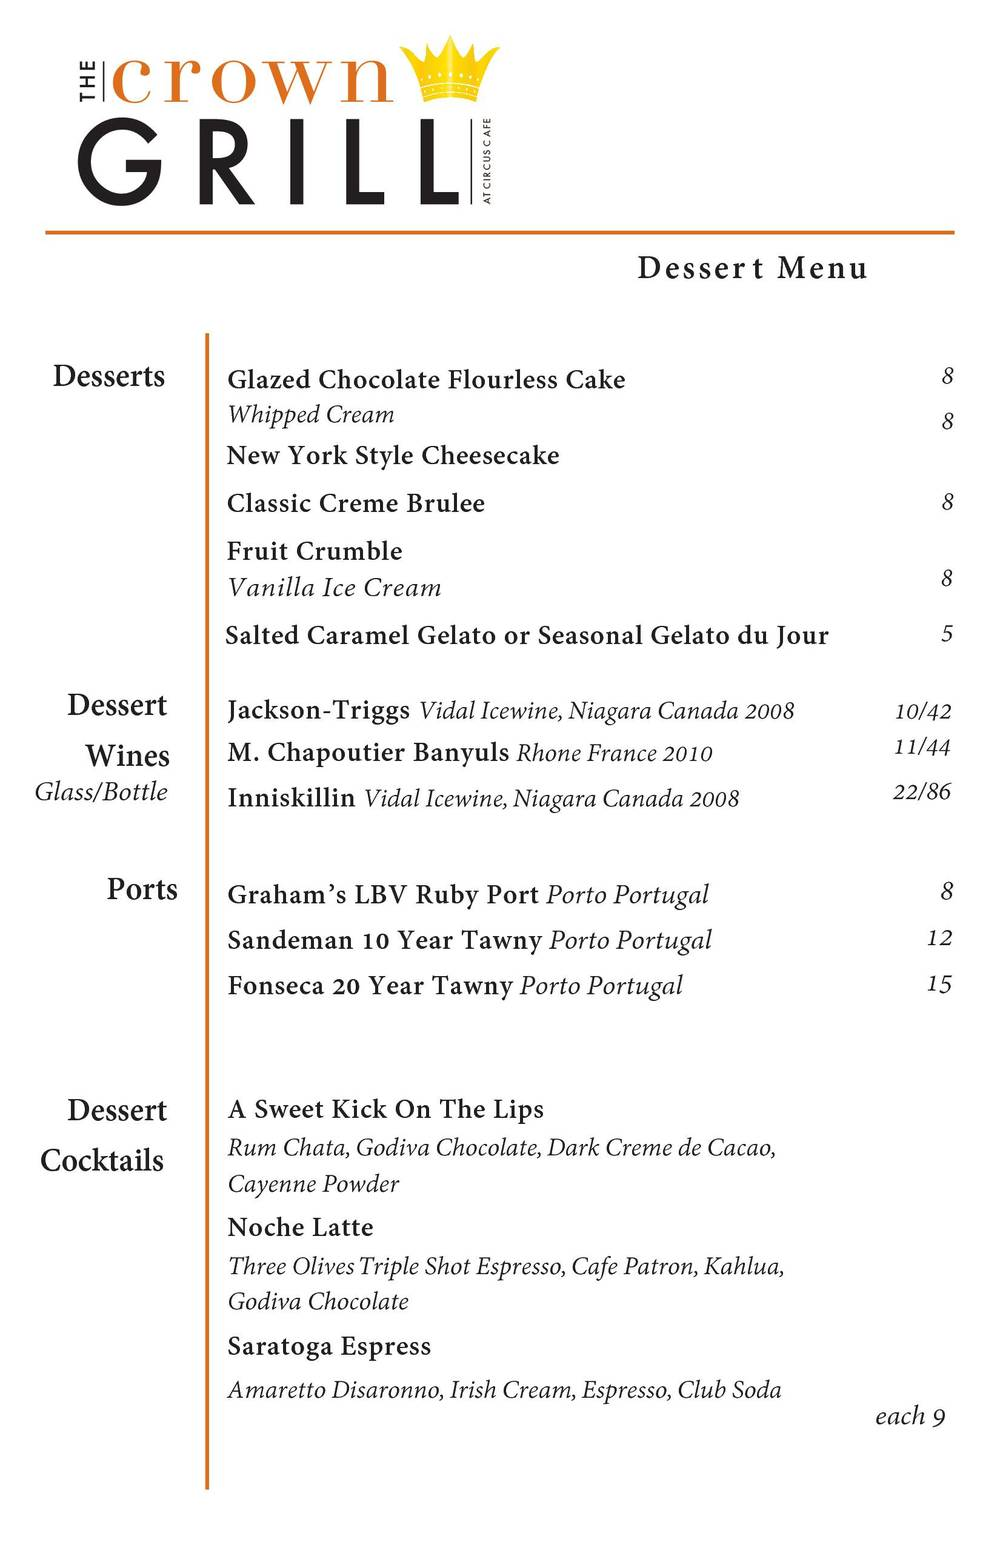 CG Dessert Menu - Fall 2015-2-0.jpg